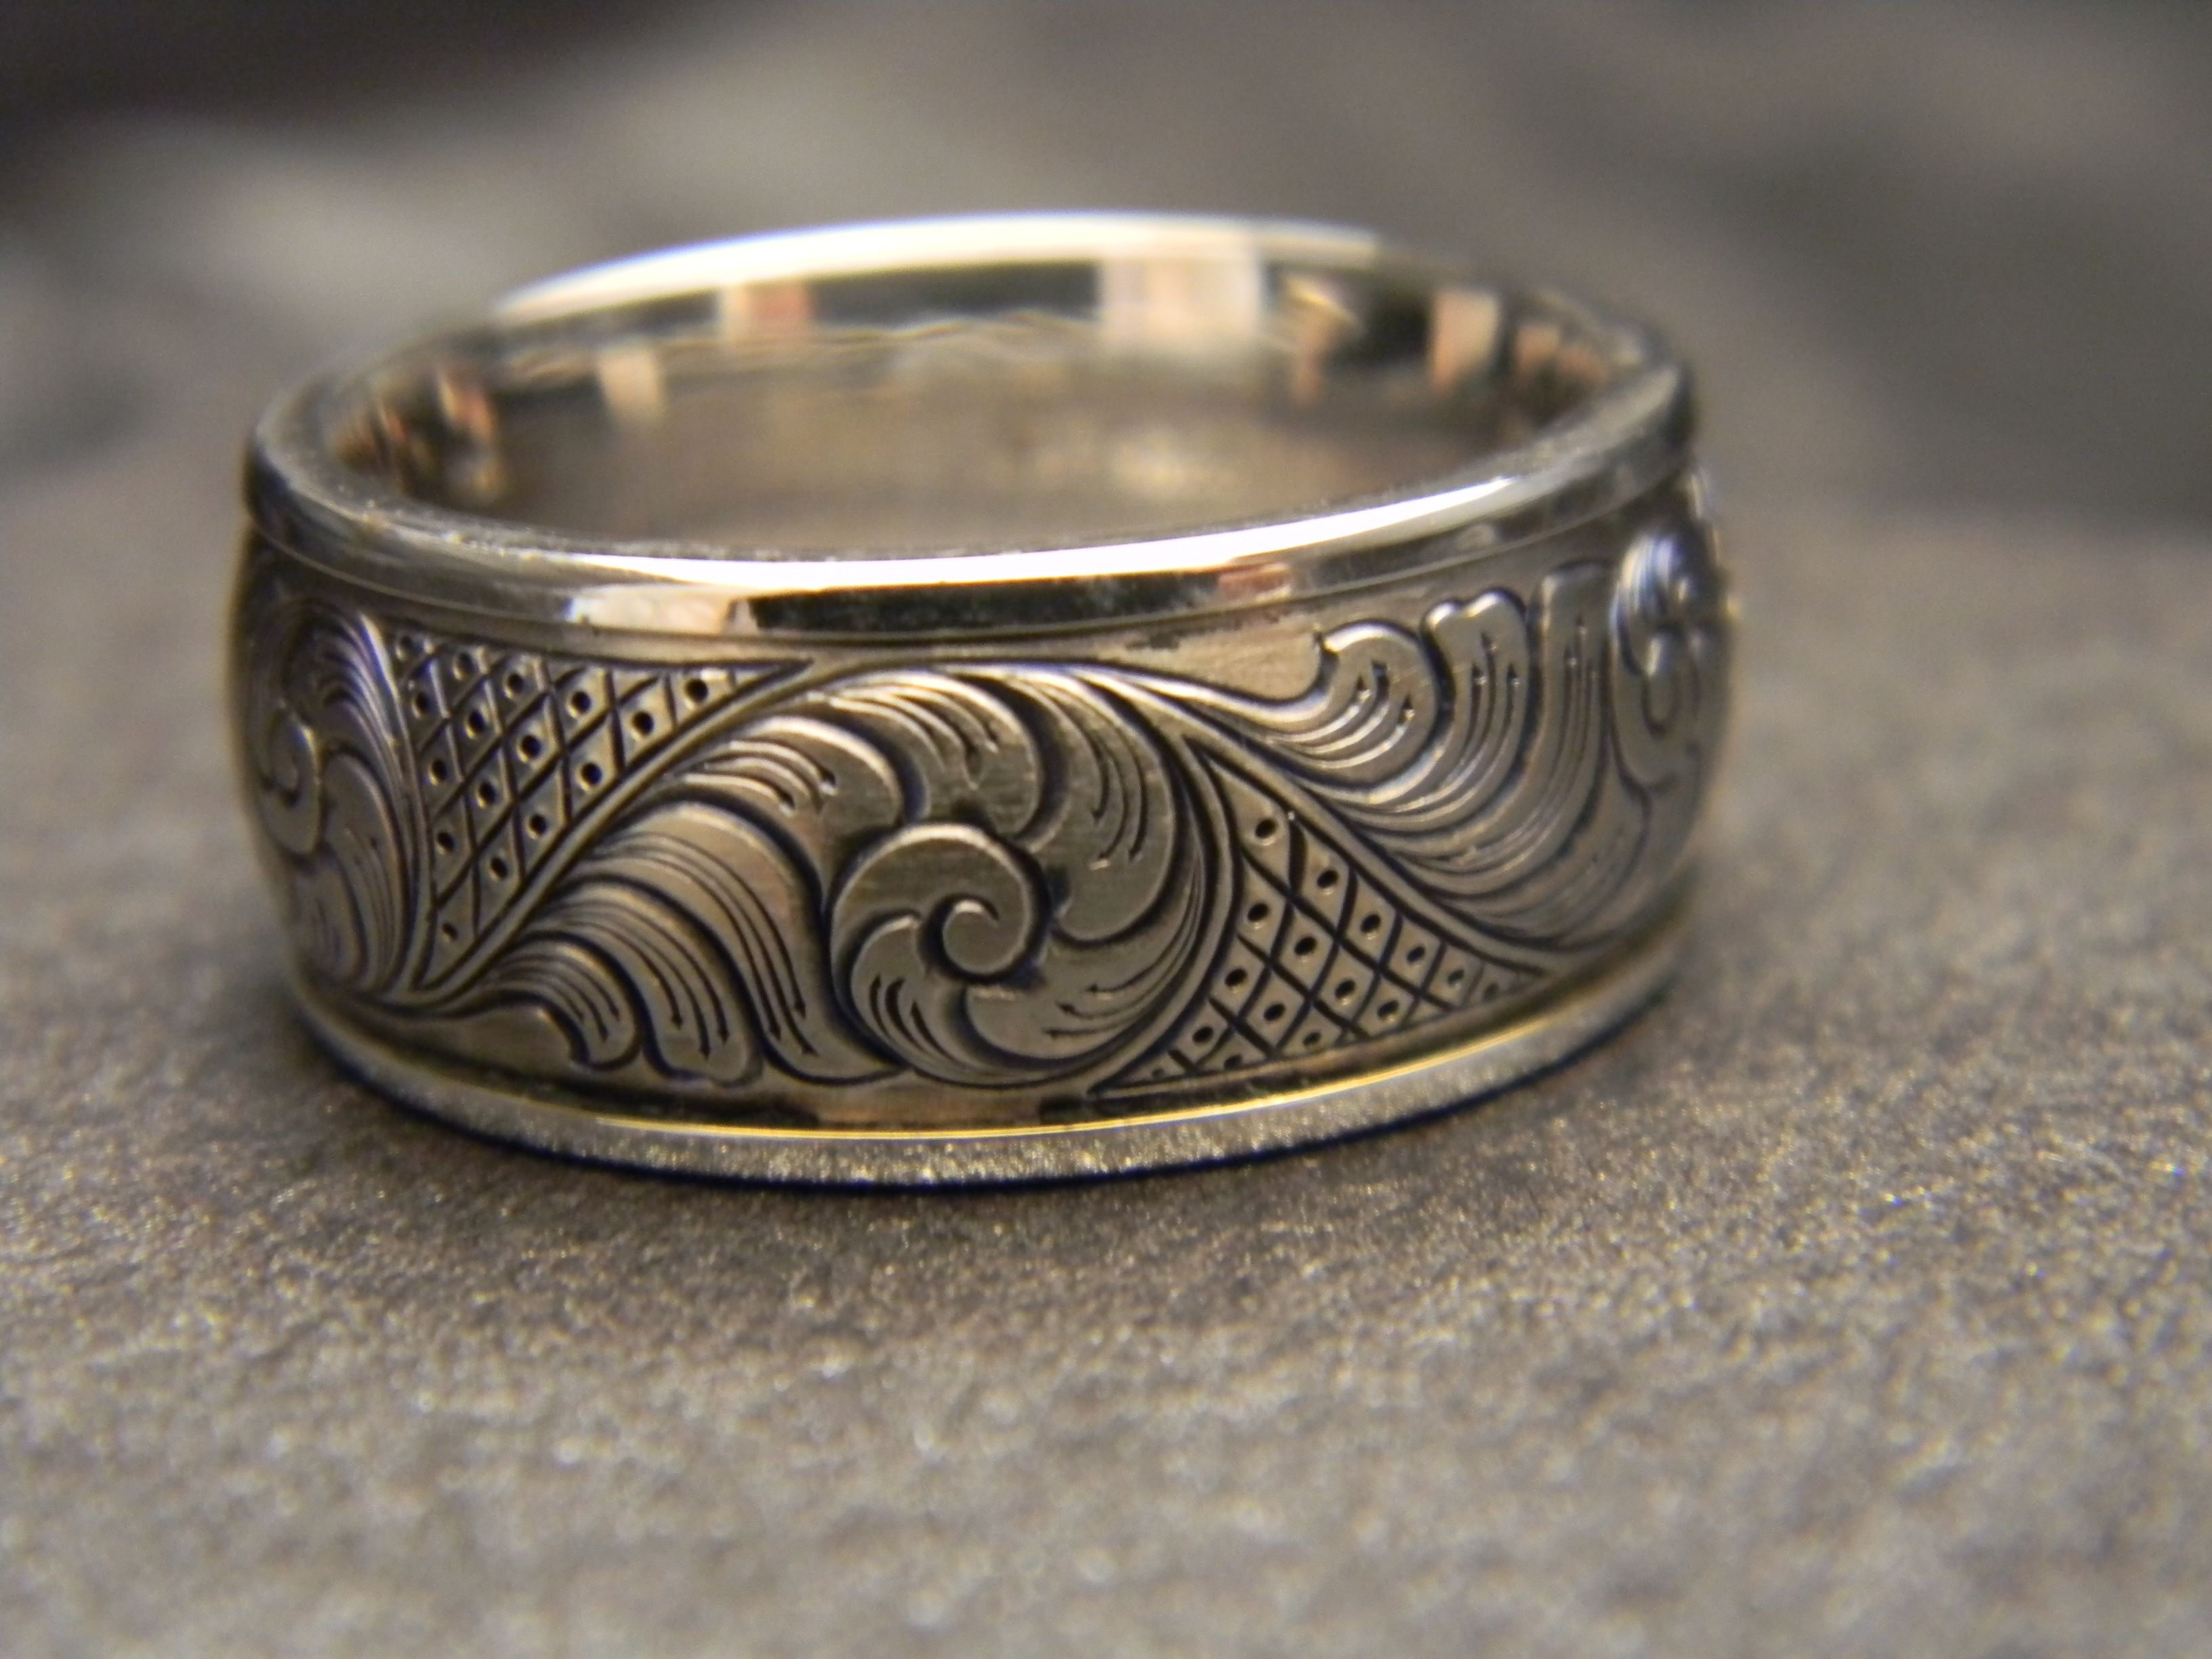 10mm wide titanium hand engraved ring with 14k white gold for Engravings on wedding rings